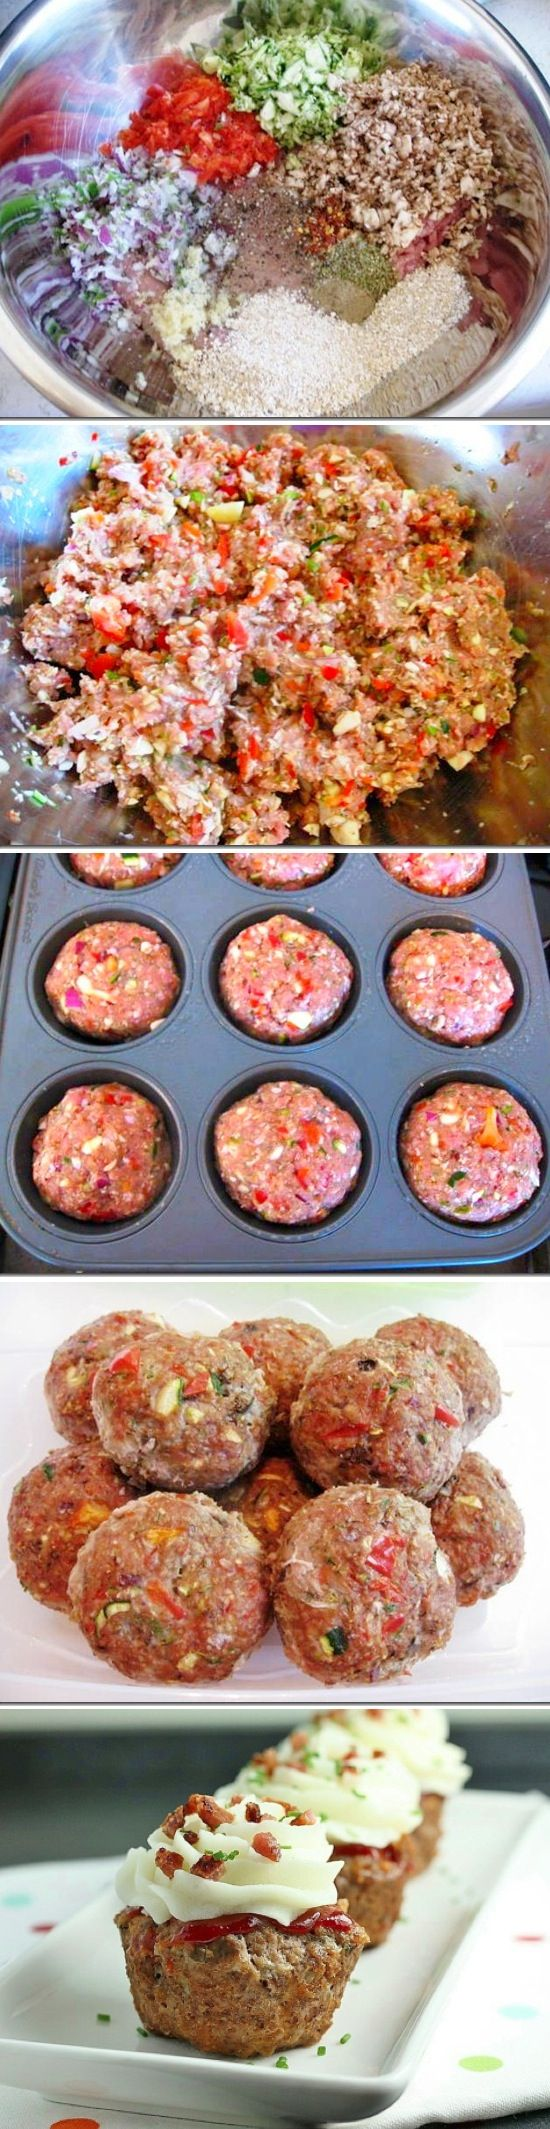 Meatloaf cupcakes recipe